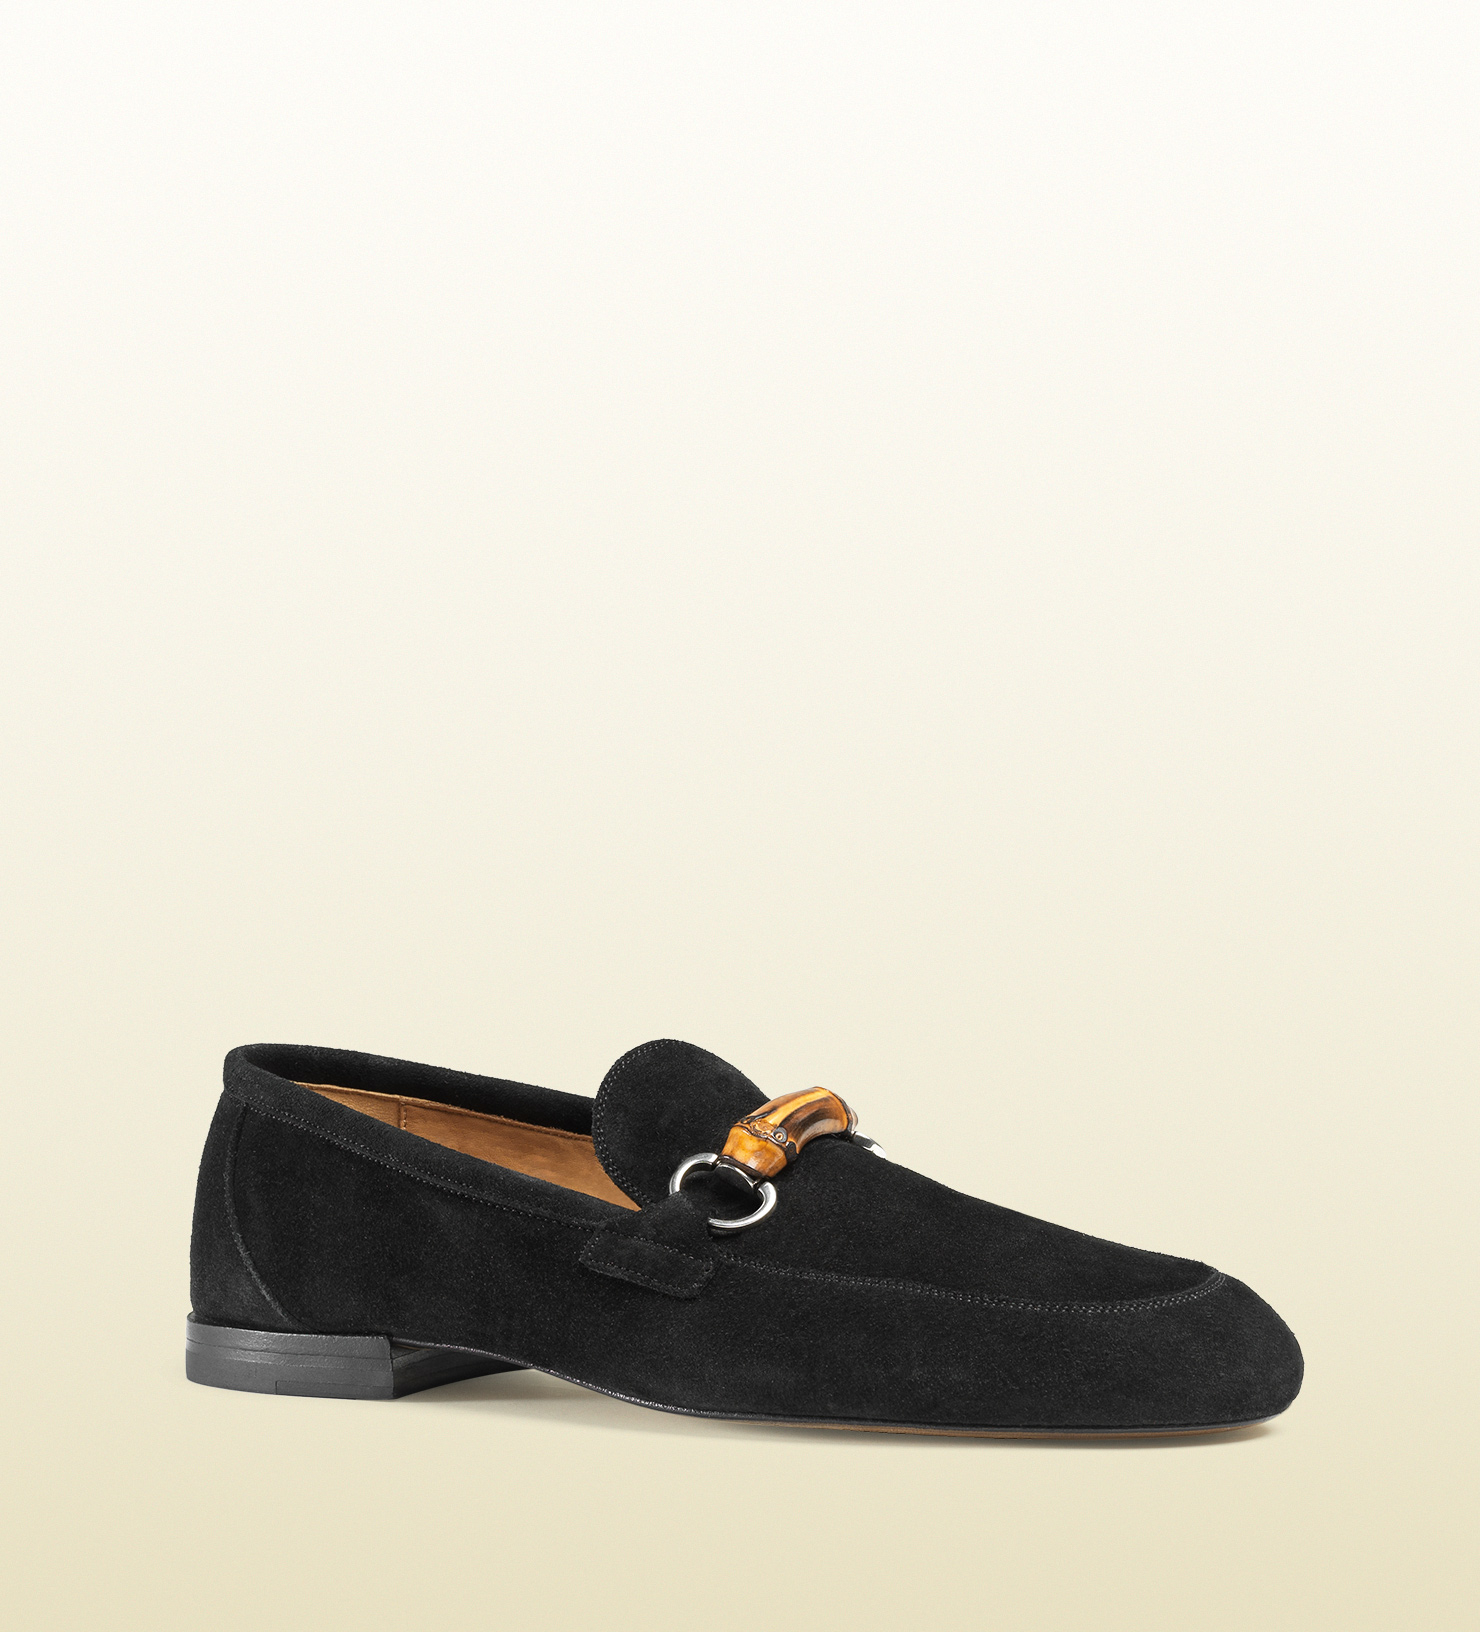 3a0dde62e99 Lyst - Gucci Suede Bamboo Horsebit Loafer in Black for Men